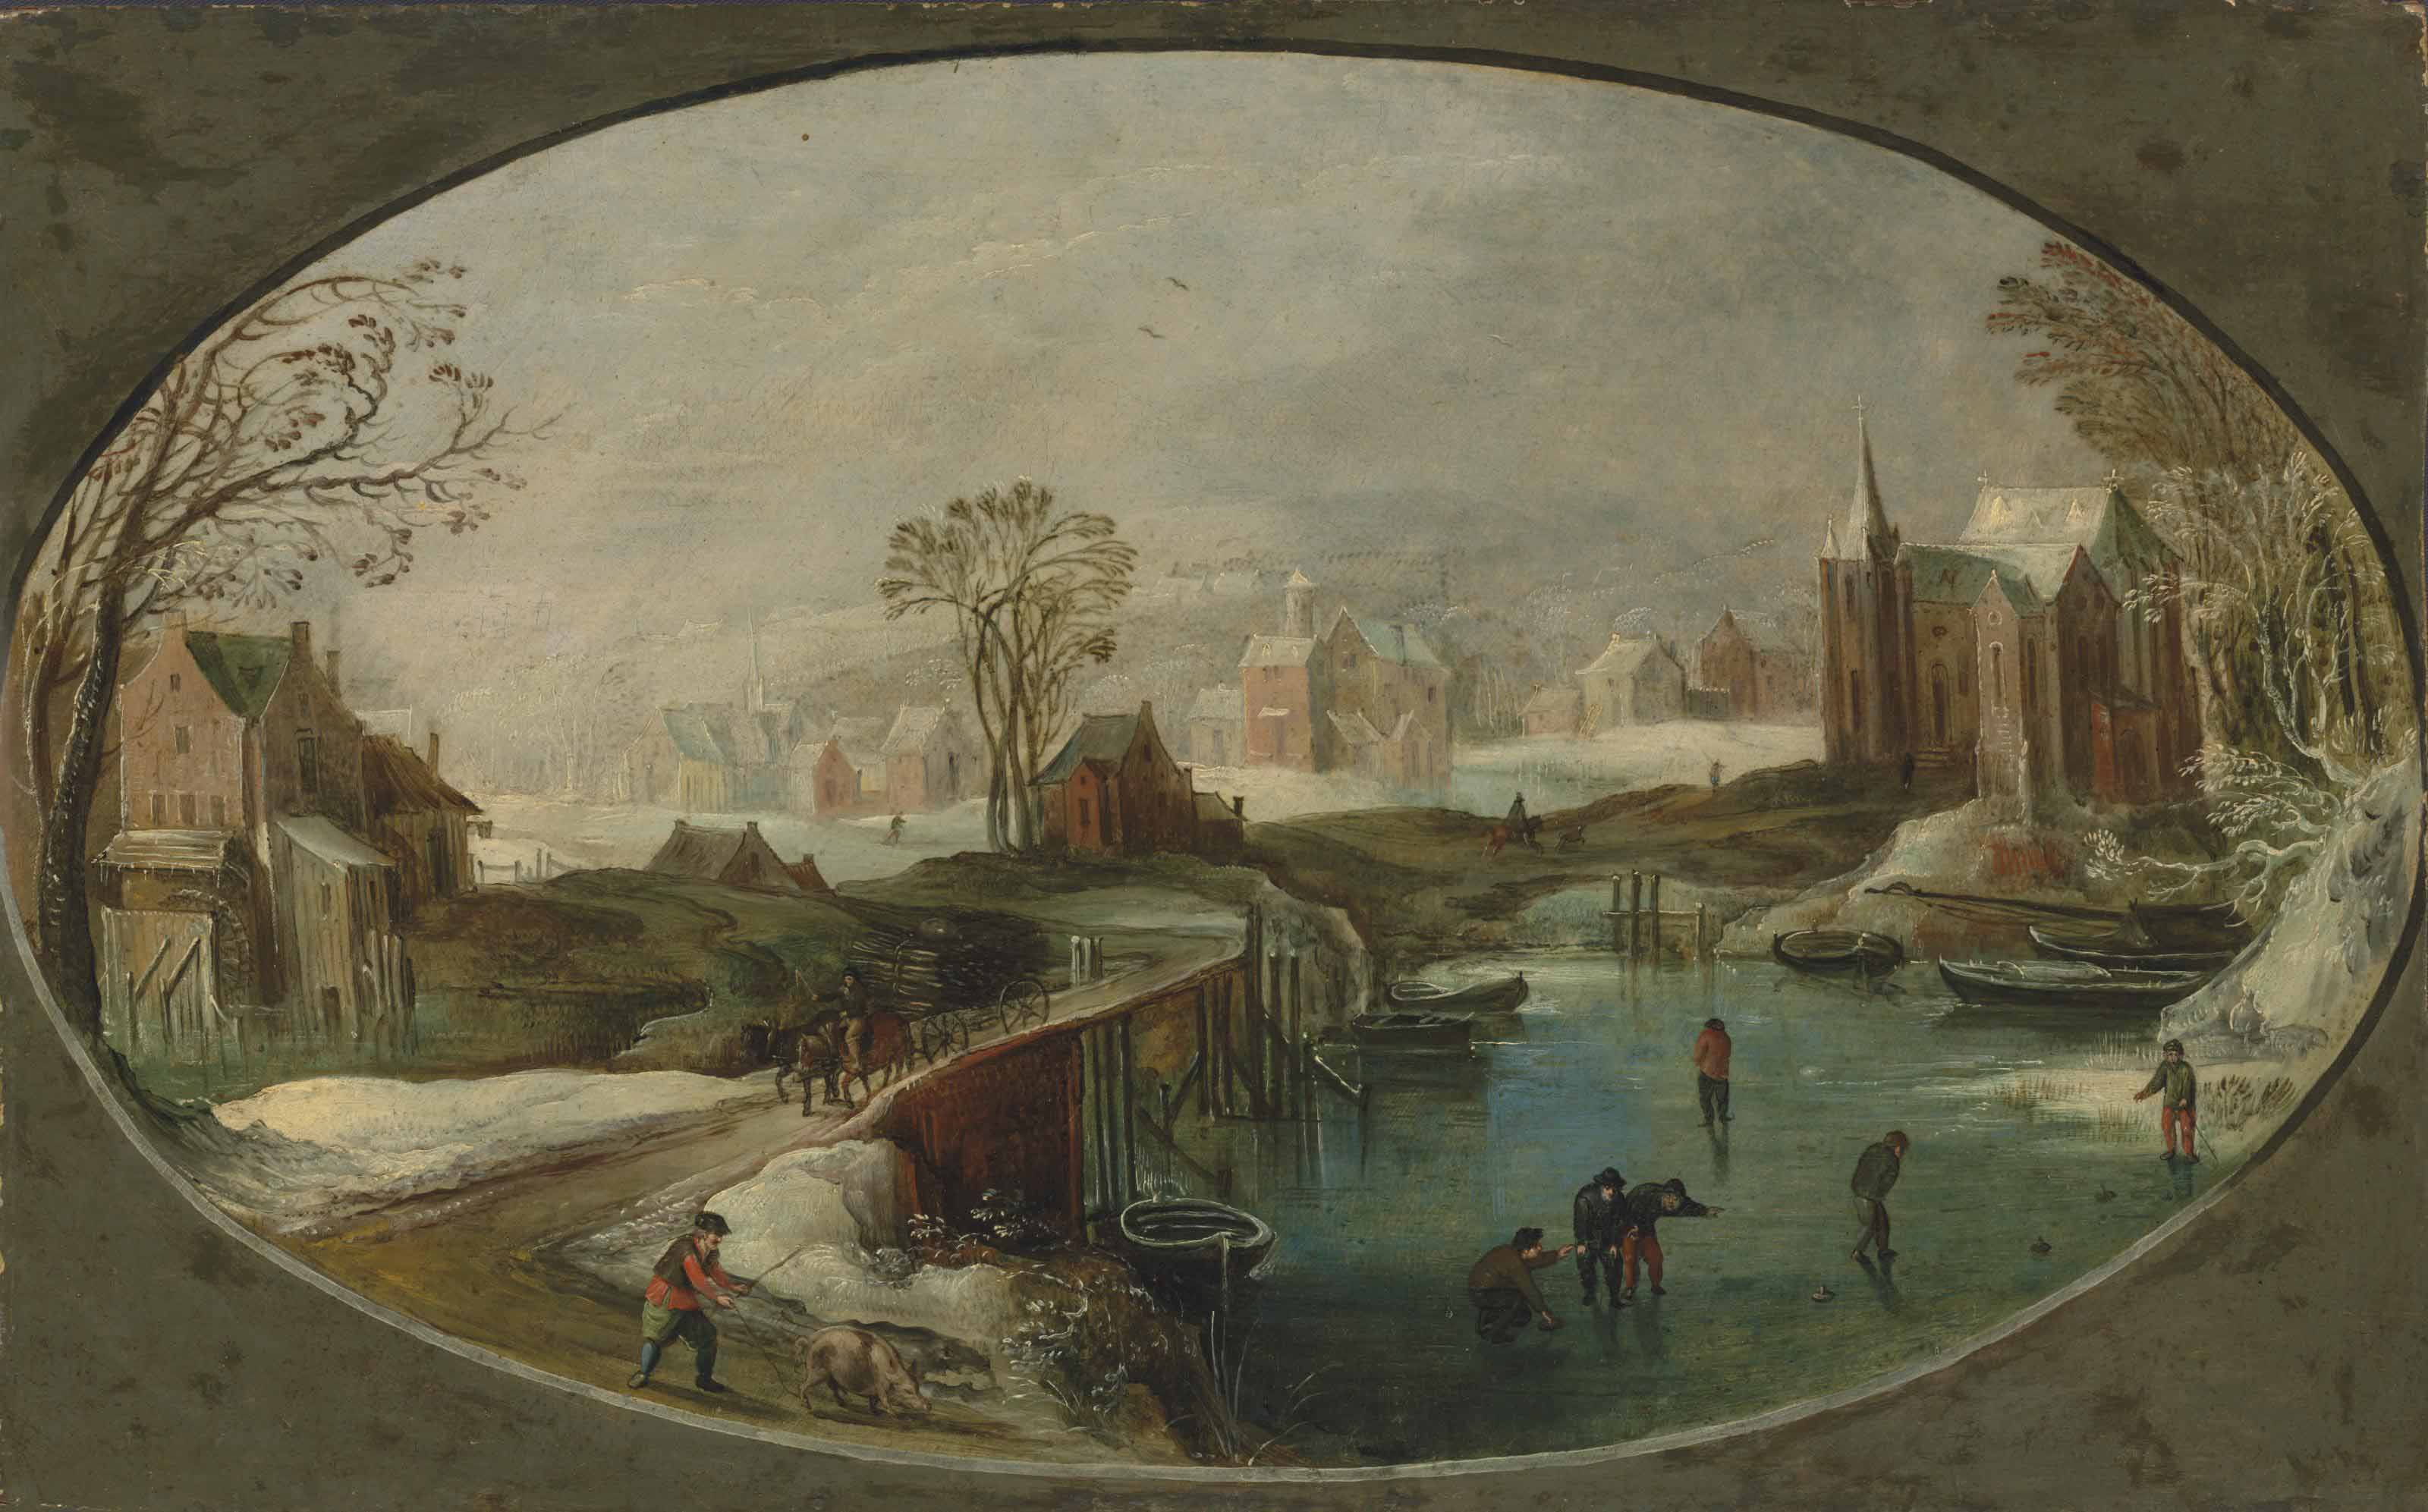 A winter landscape with figures playing games on a frozen river, a faggot-gatherer and a herdsman on a path, a village beyond